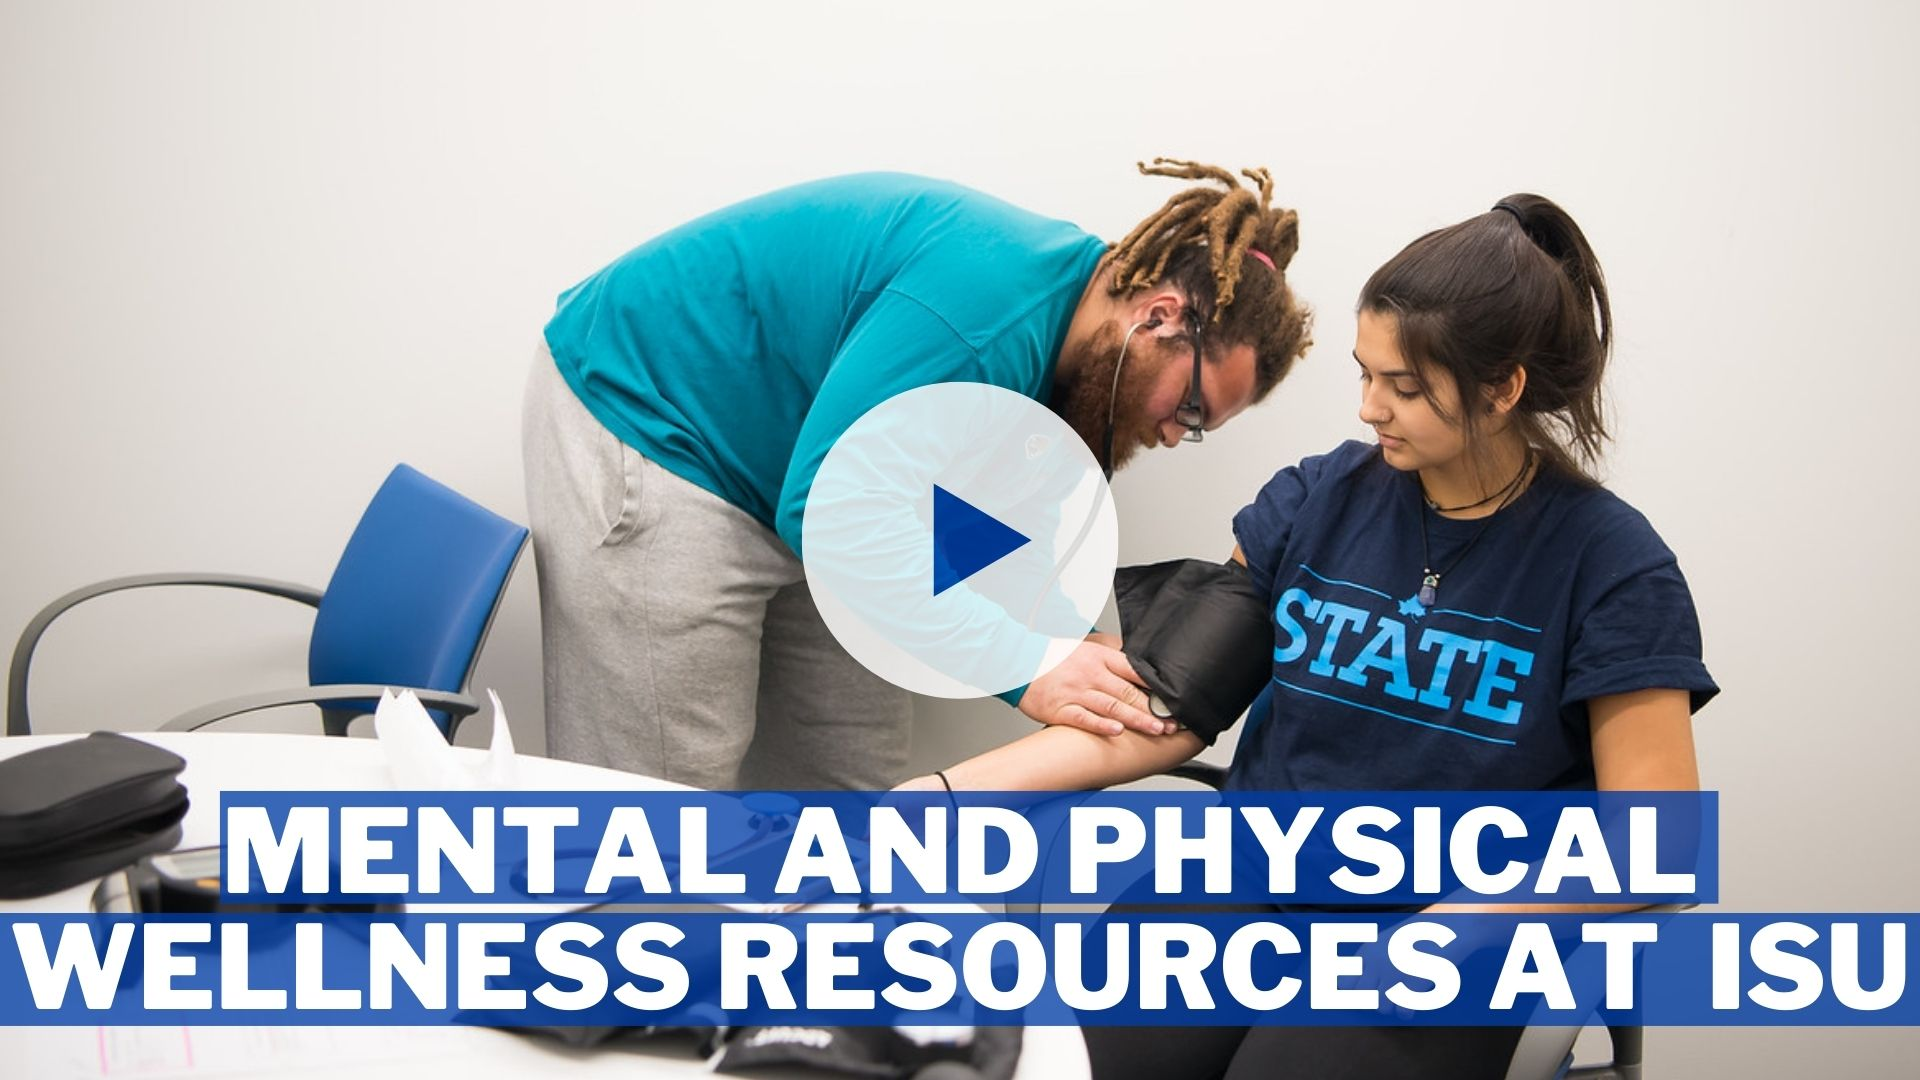 Mental and Physical Wellness Resources at ISU